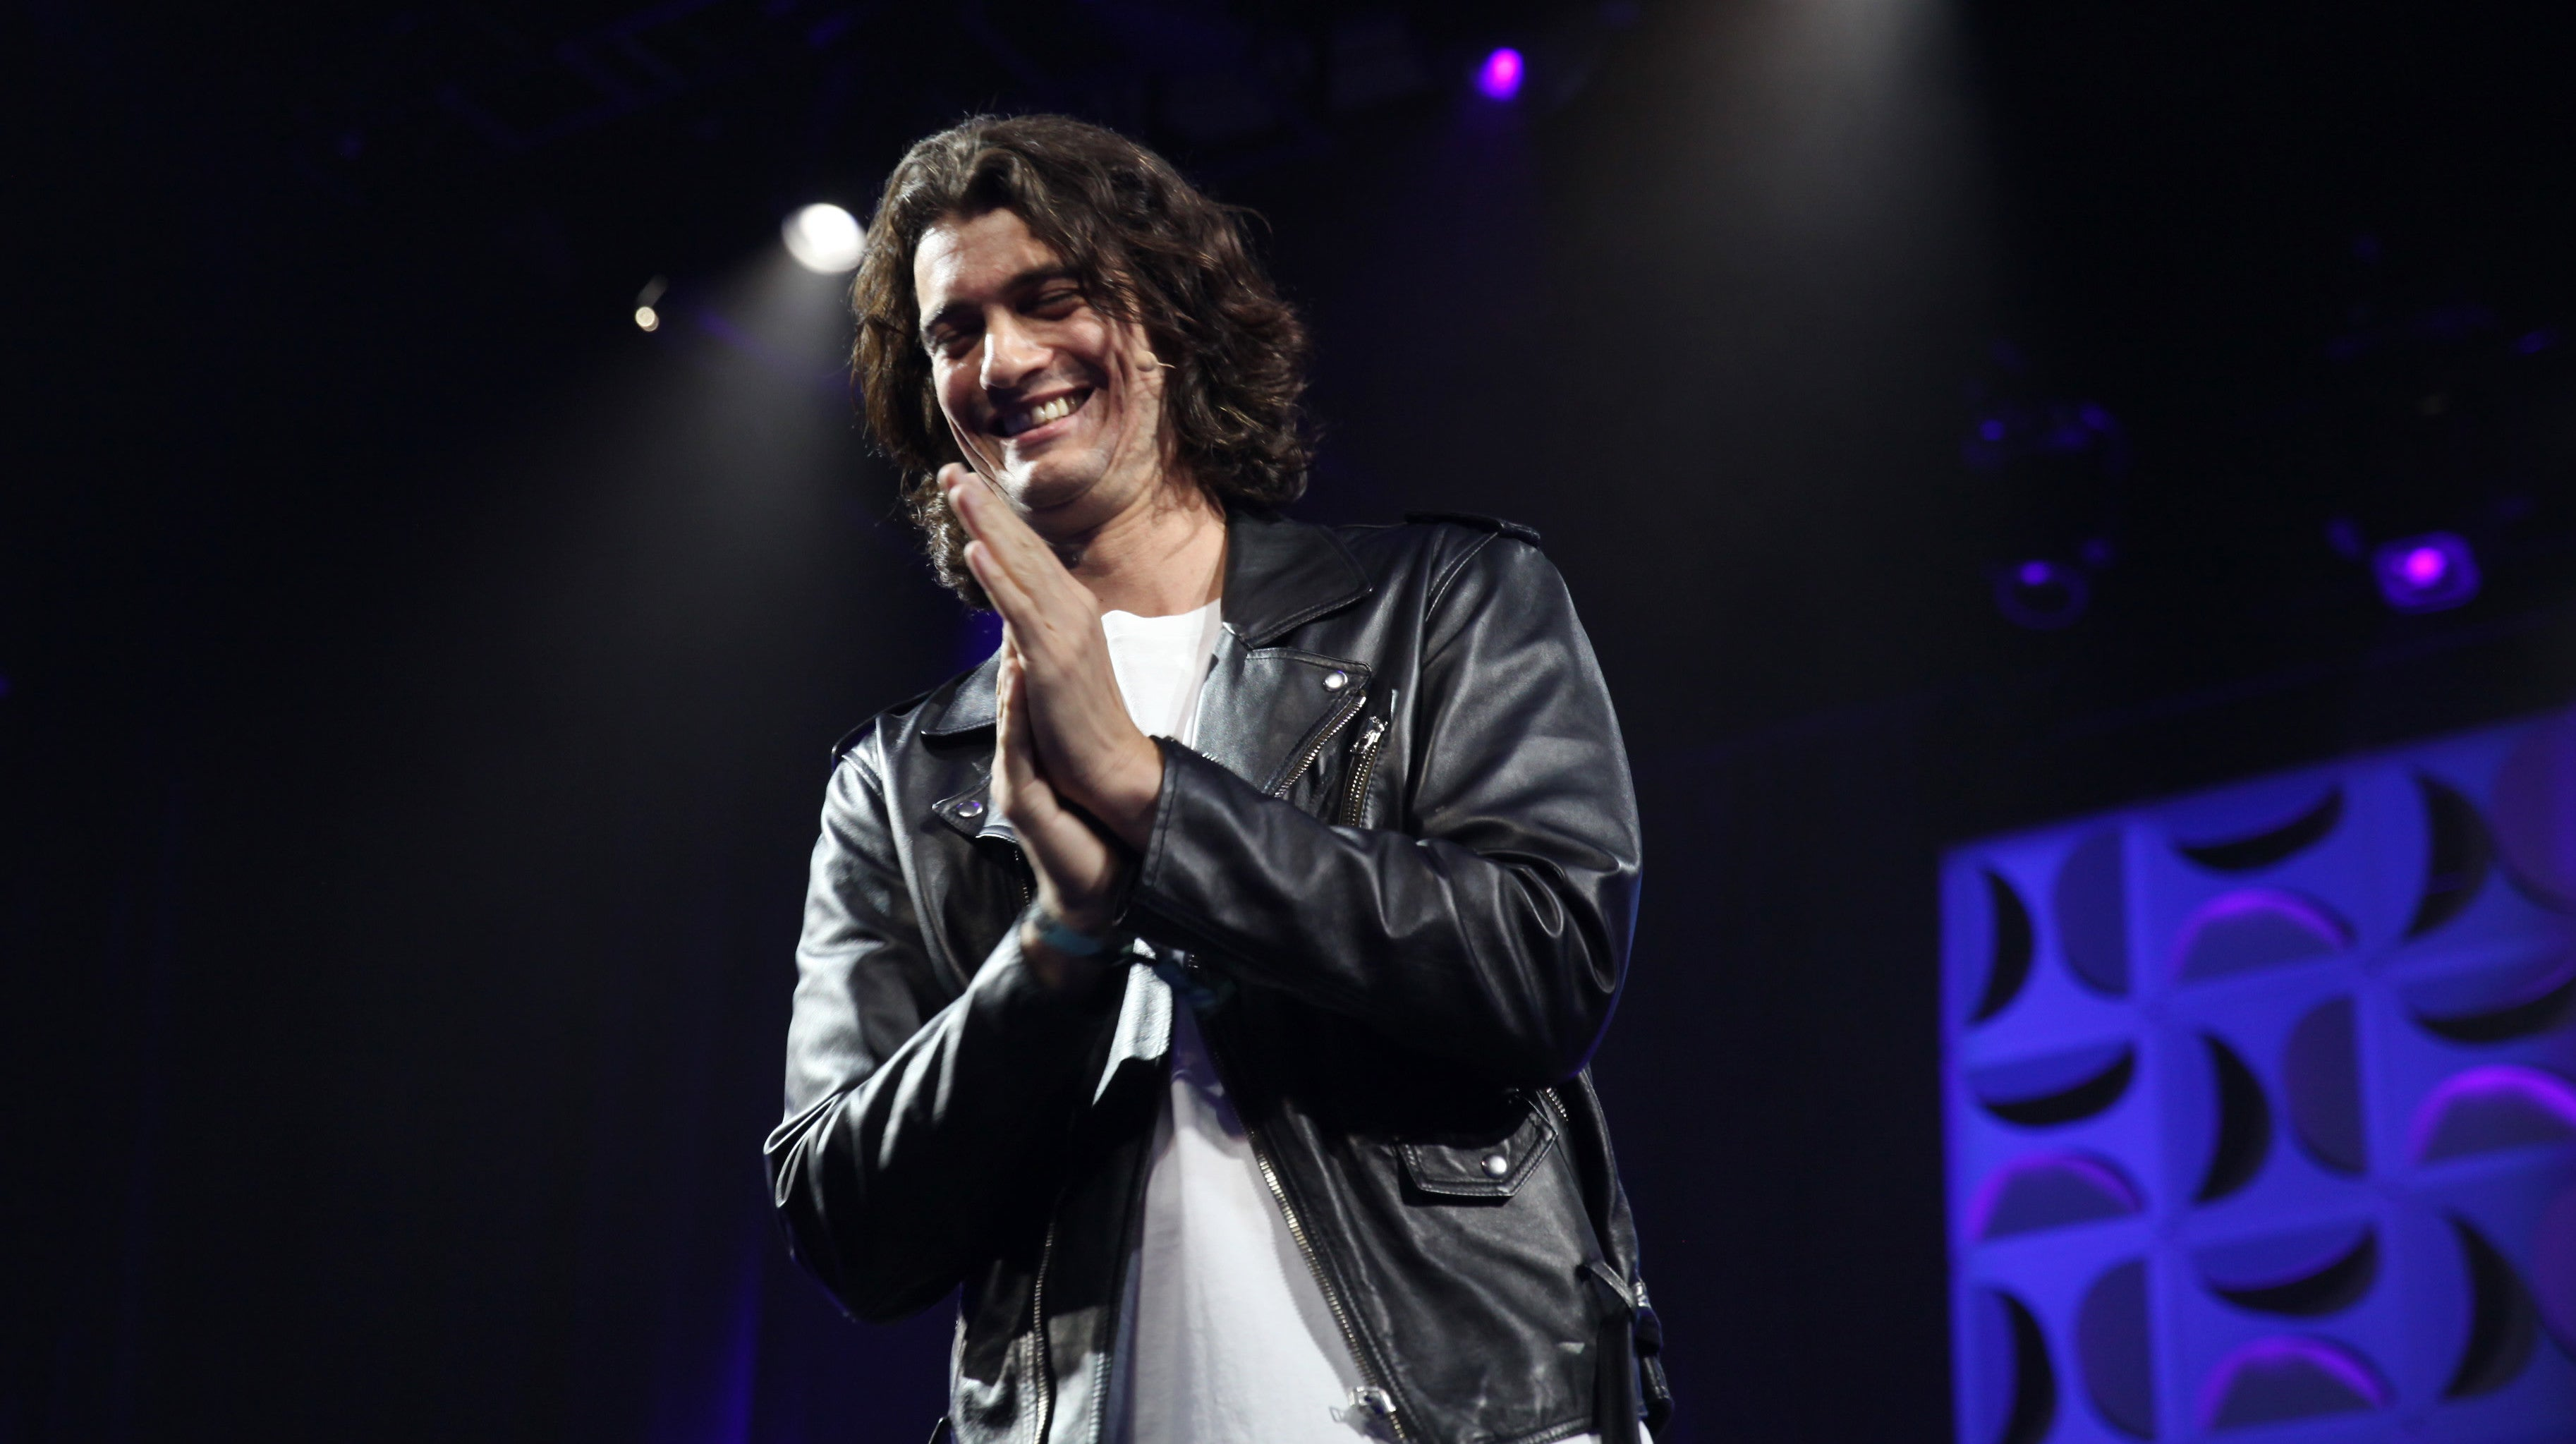 WeWork Founder Given $2.5 Billion To LeaveWork